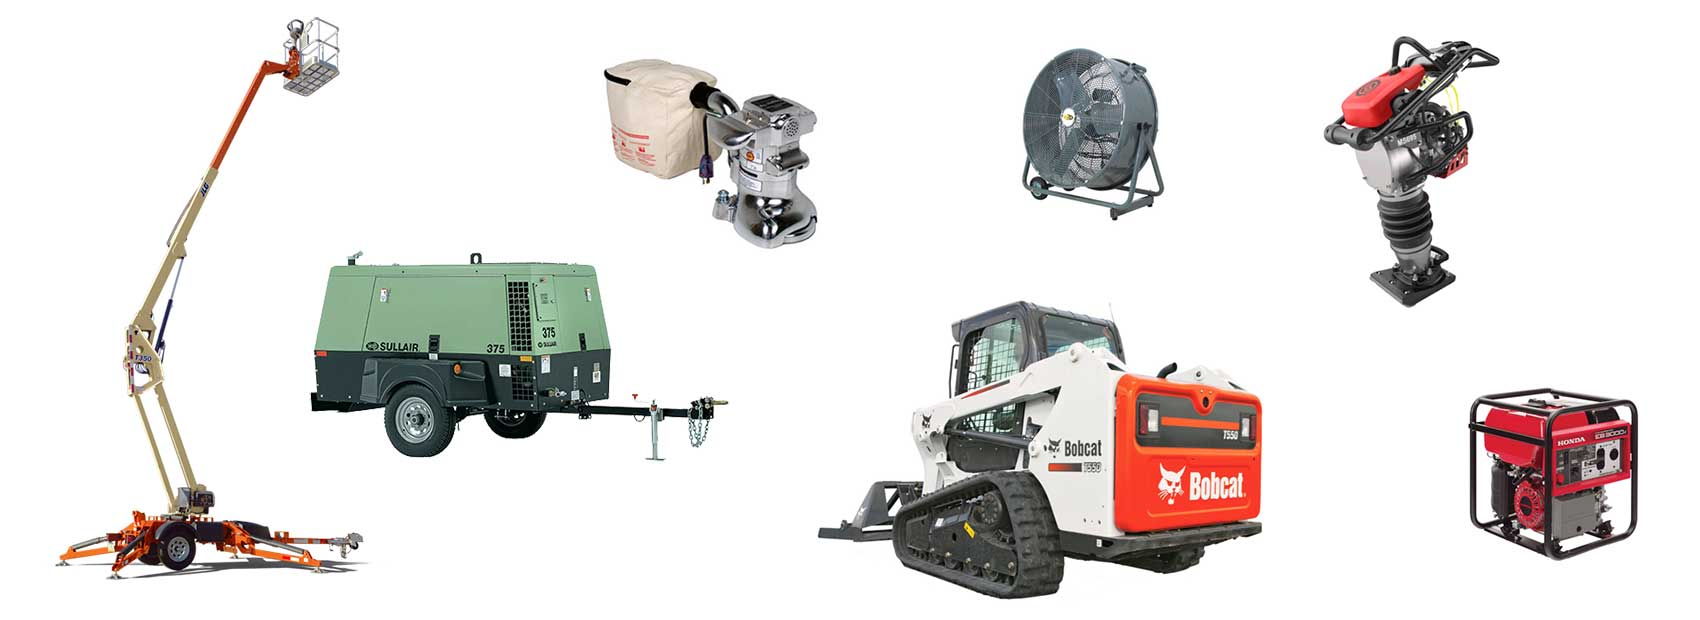 Equipment Rentals in Miami OK, Quapaw, Fairland, Welch, Wyandotte, Tulsa Oklahoma